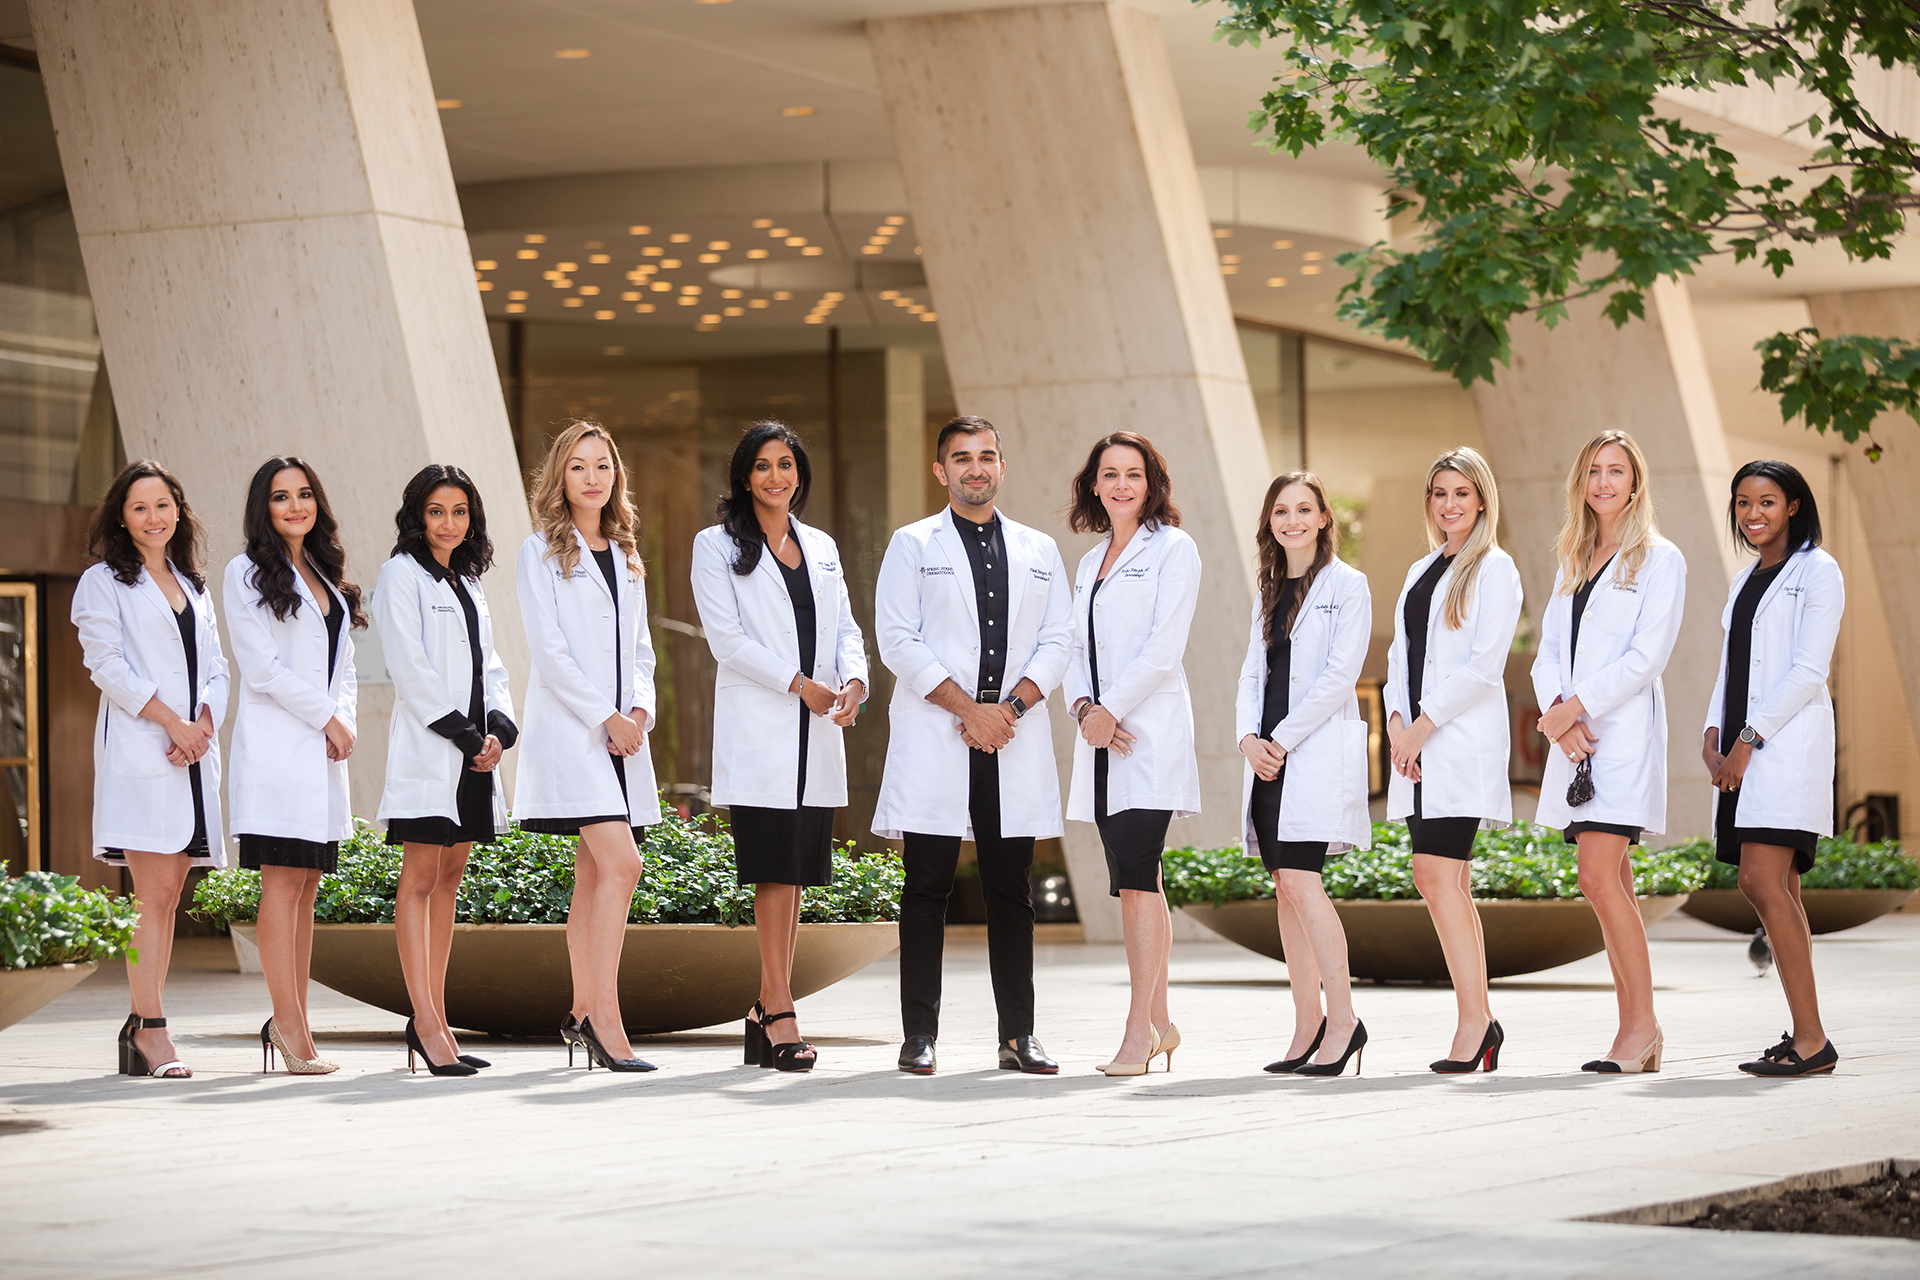 Dermatologists at Spring Street Dermatology posing for a group photo, New York City, NY